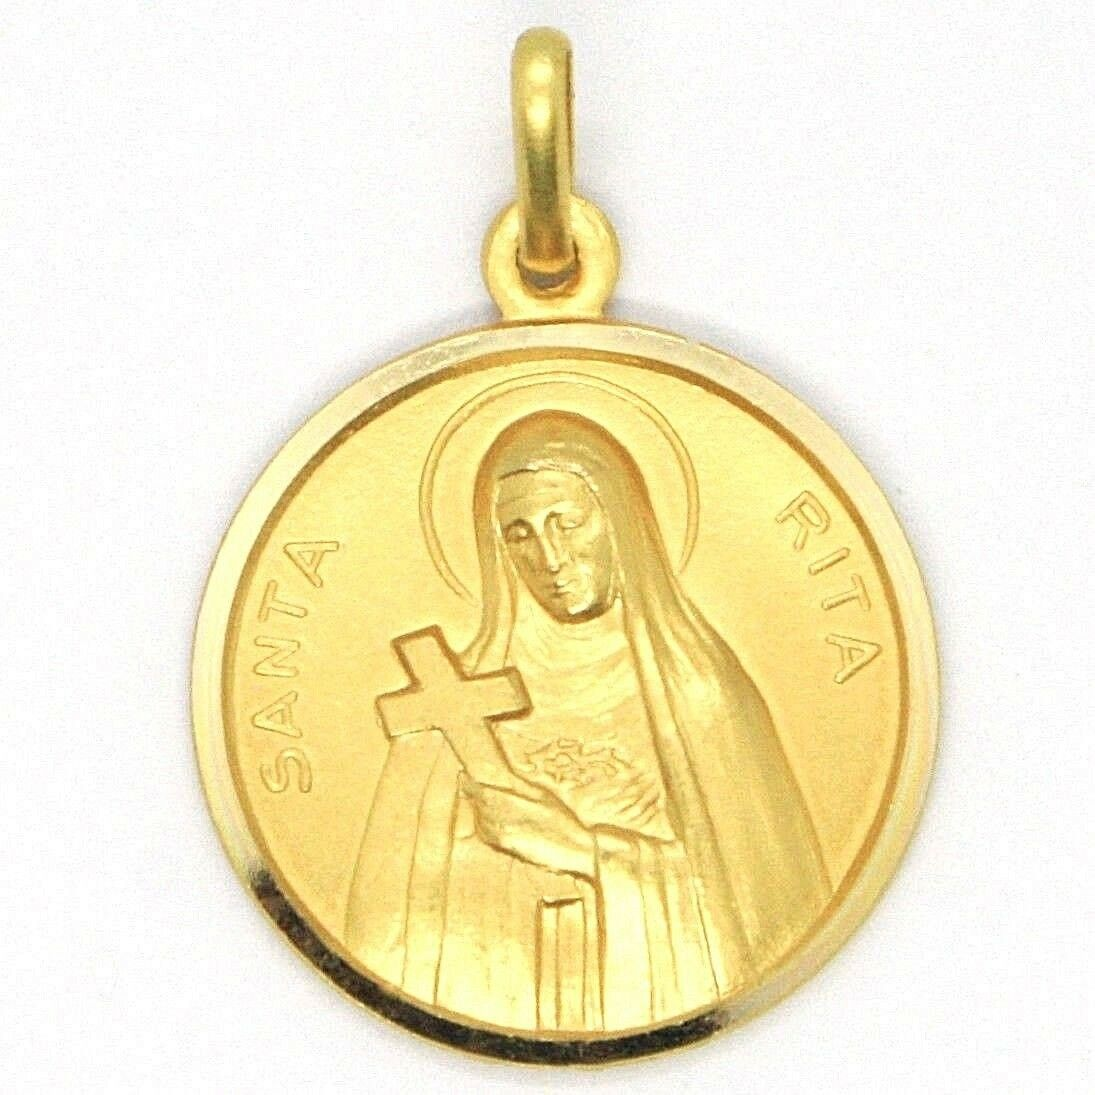 SOLID 18K YELLOW GOLD HOLY ST SAINT SANTA RITA ROUND MEDAL MADE IN ITALY, 17 MM